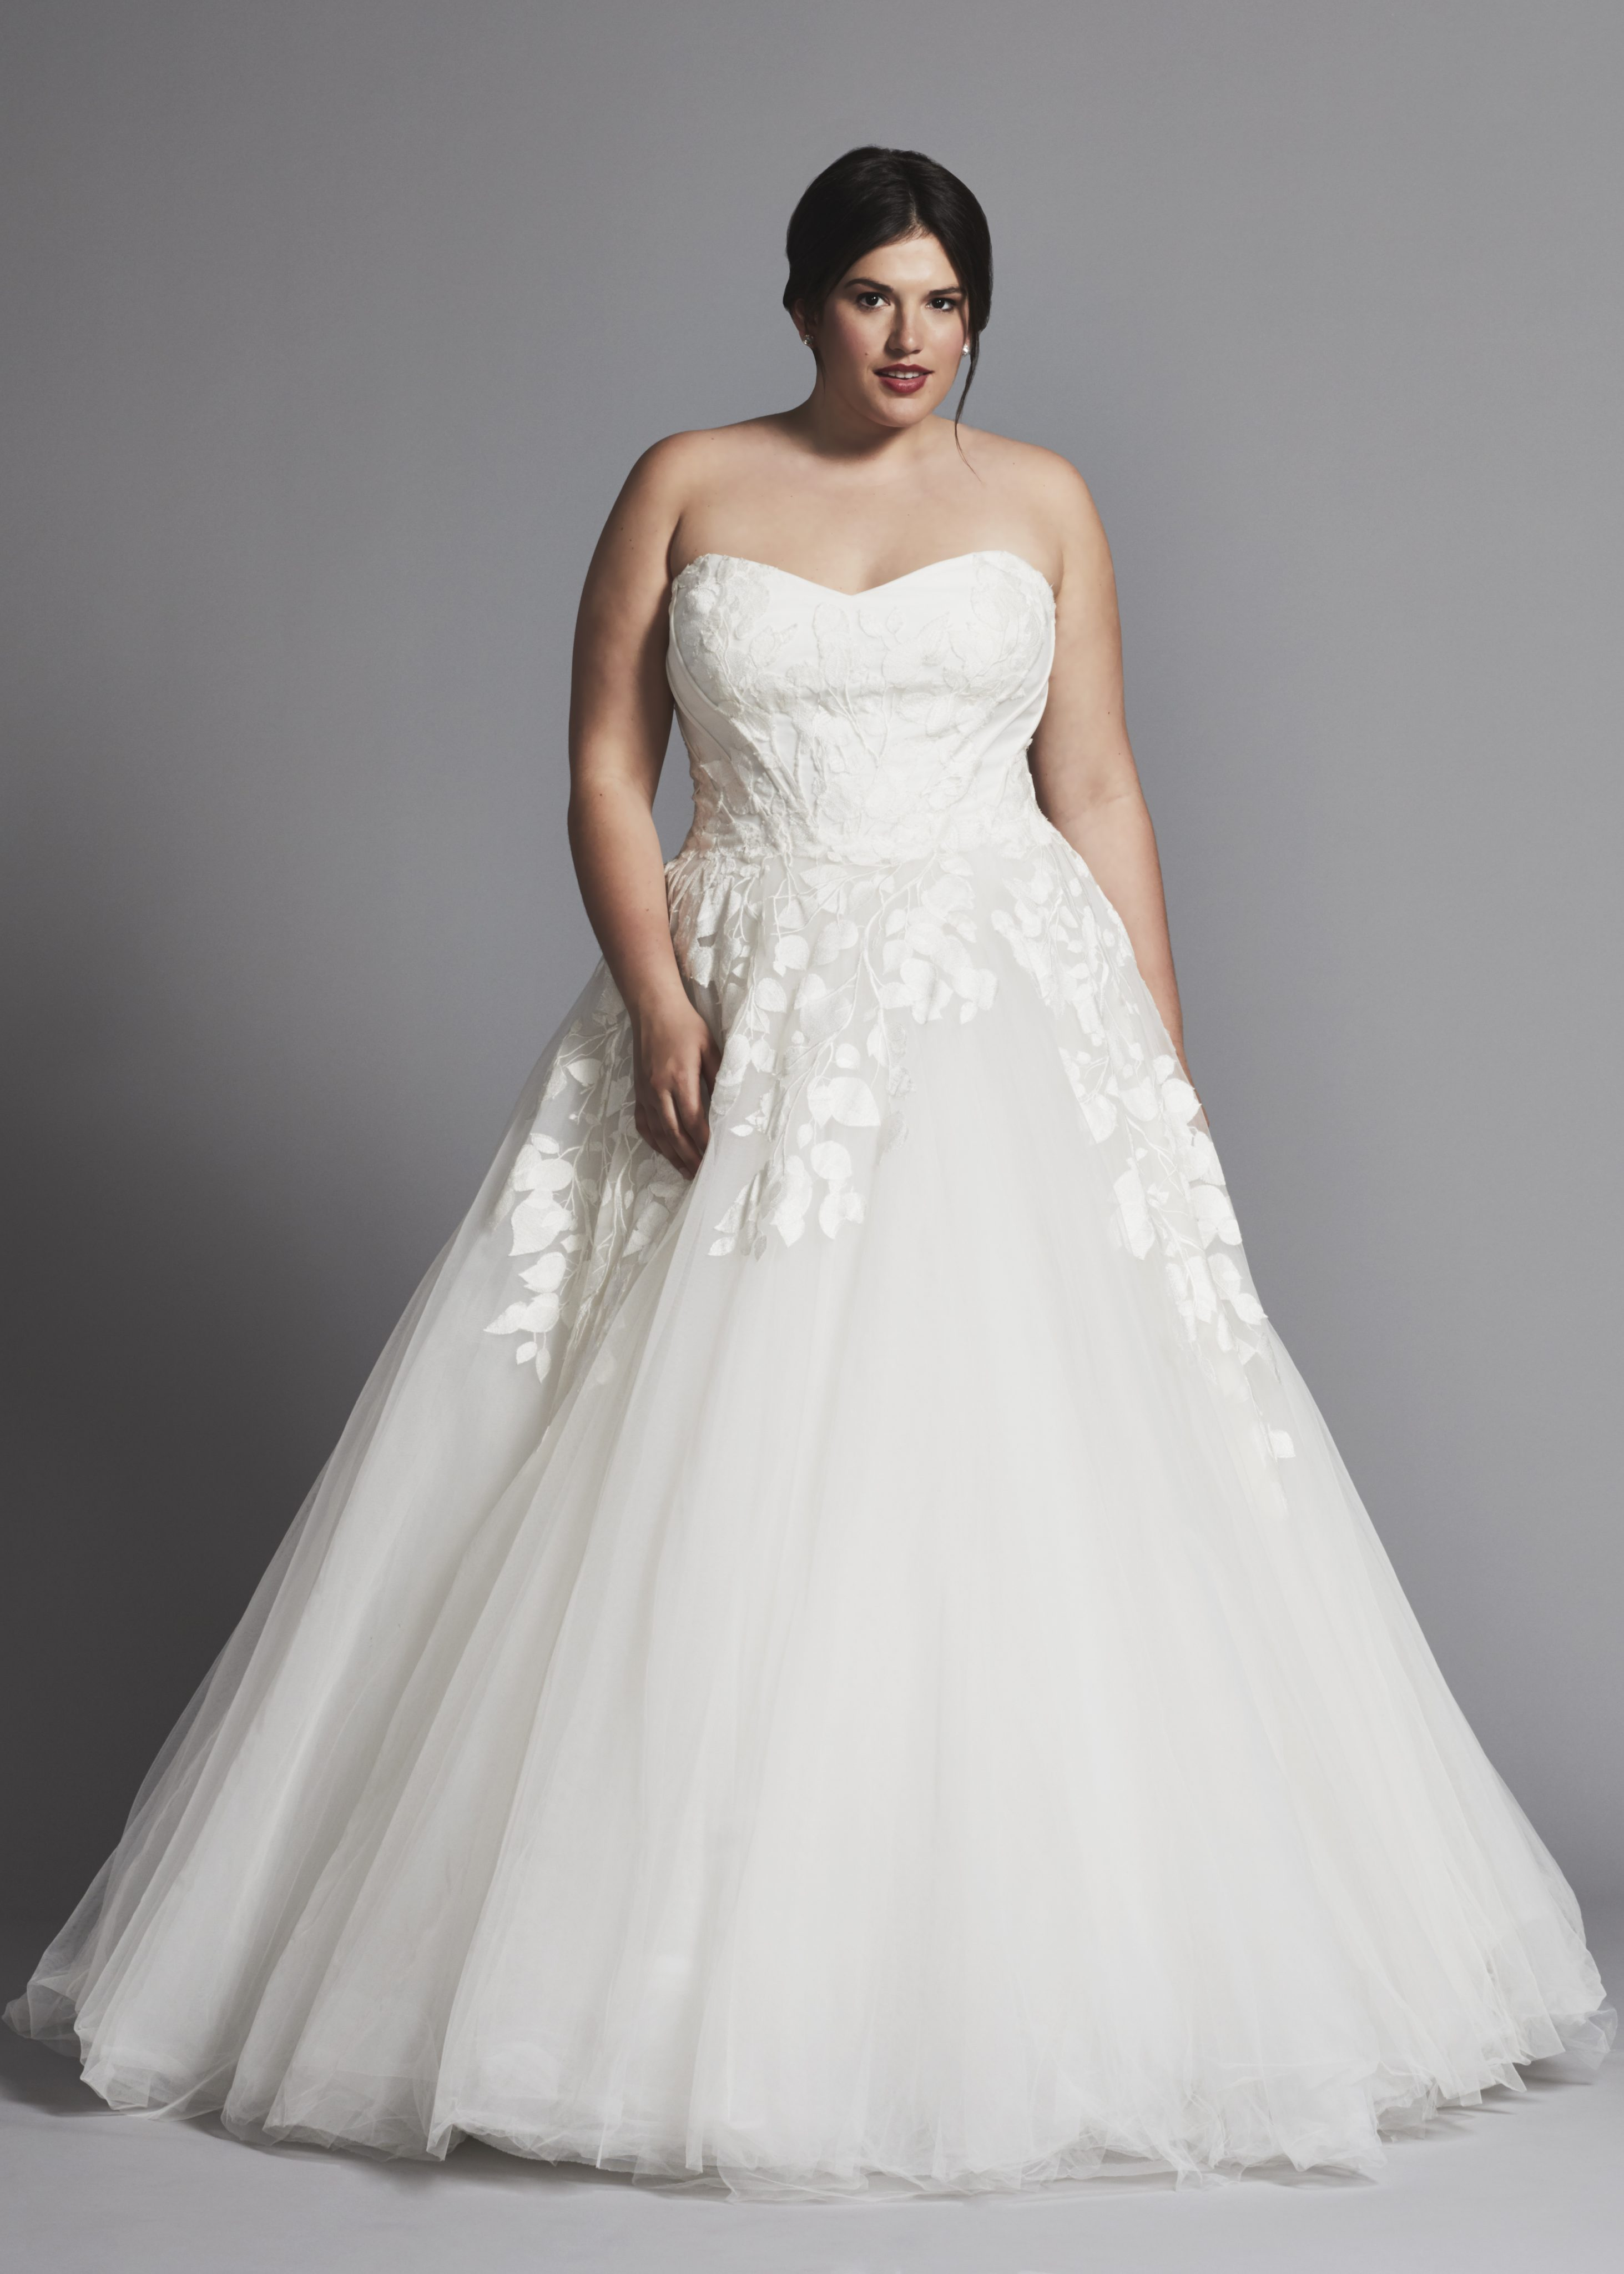 Strapless Applique Ball Gown Wedding Dress With Tulle Skirt ...